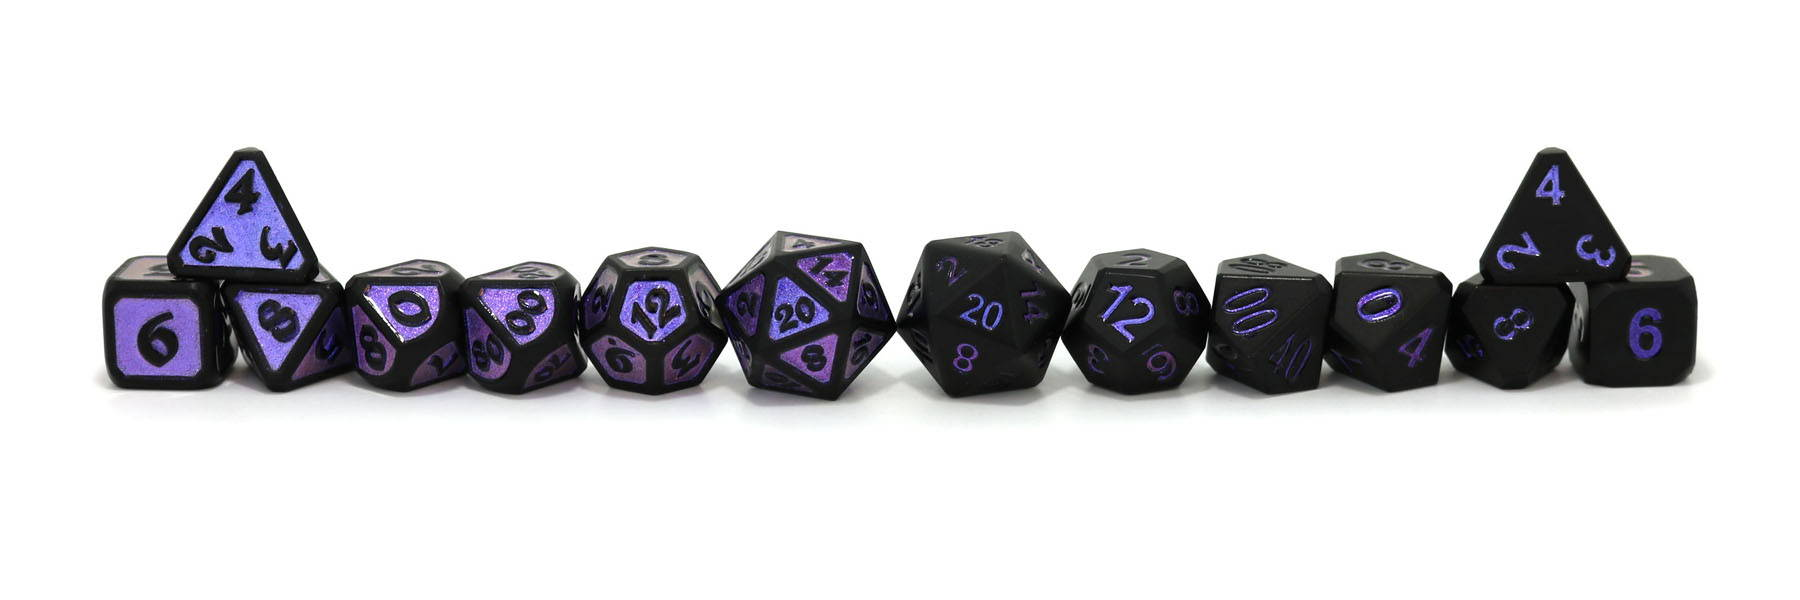 20 Sided Die D20 for  D/&D RPG Dice Game Set Pack of 20